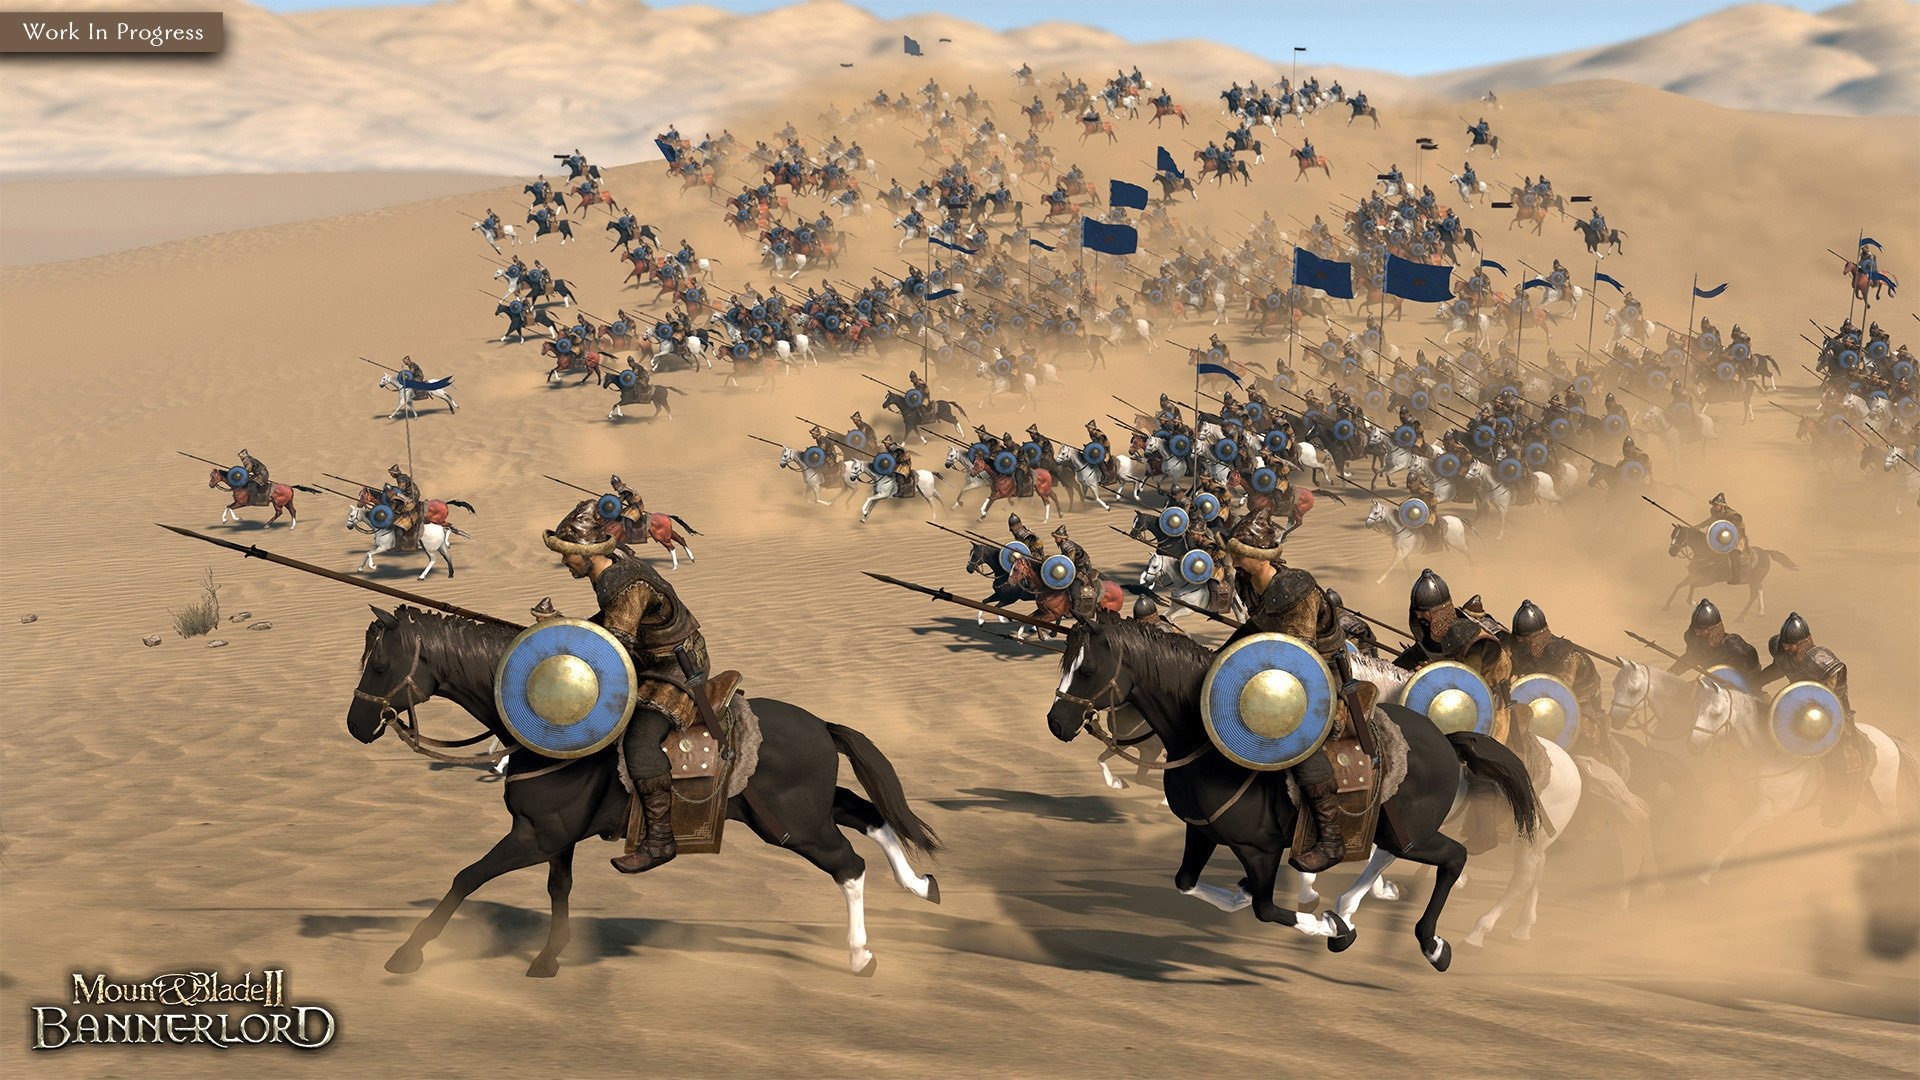 Mount Blade Ii Bannerlord Starts Early Access On March 31